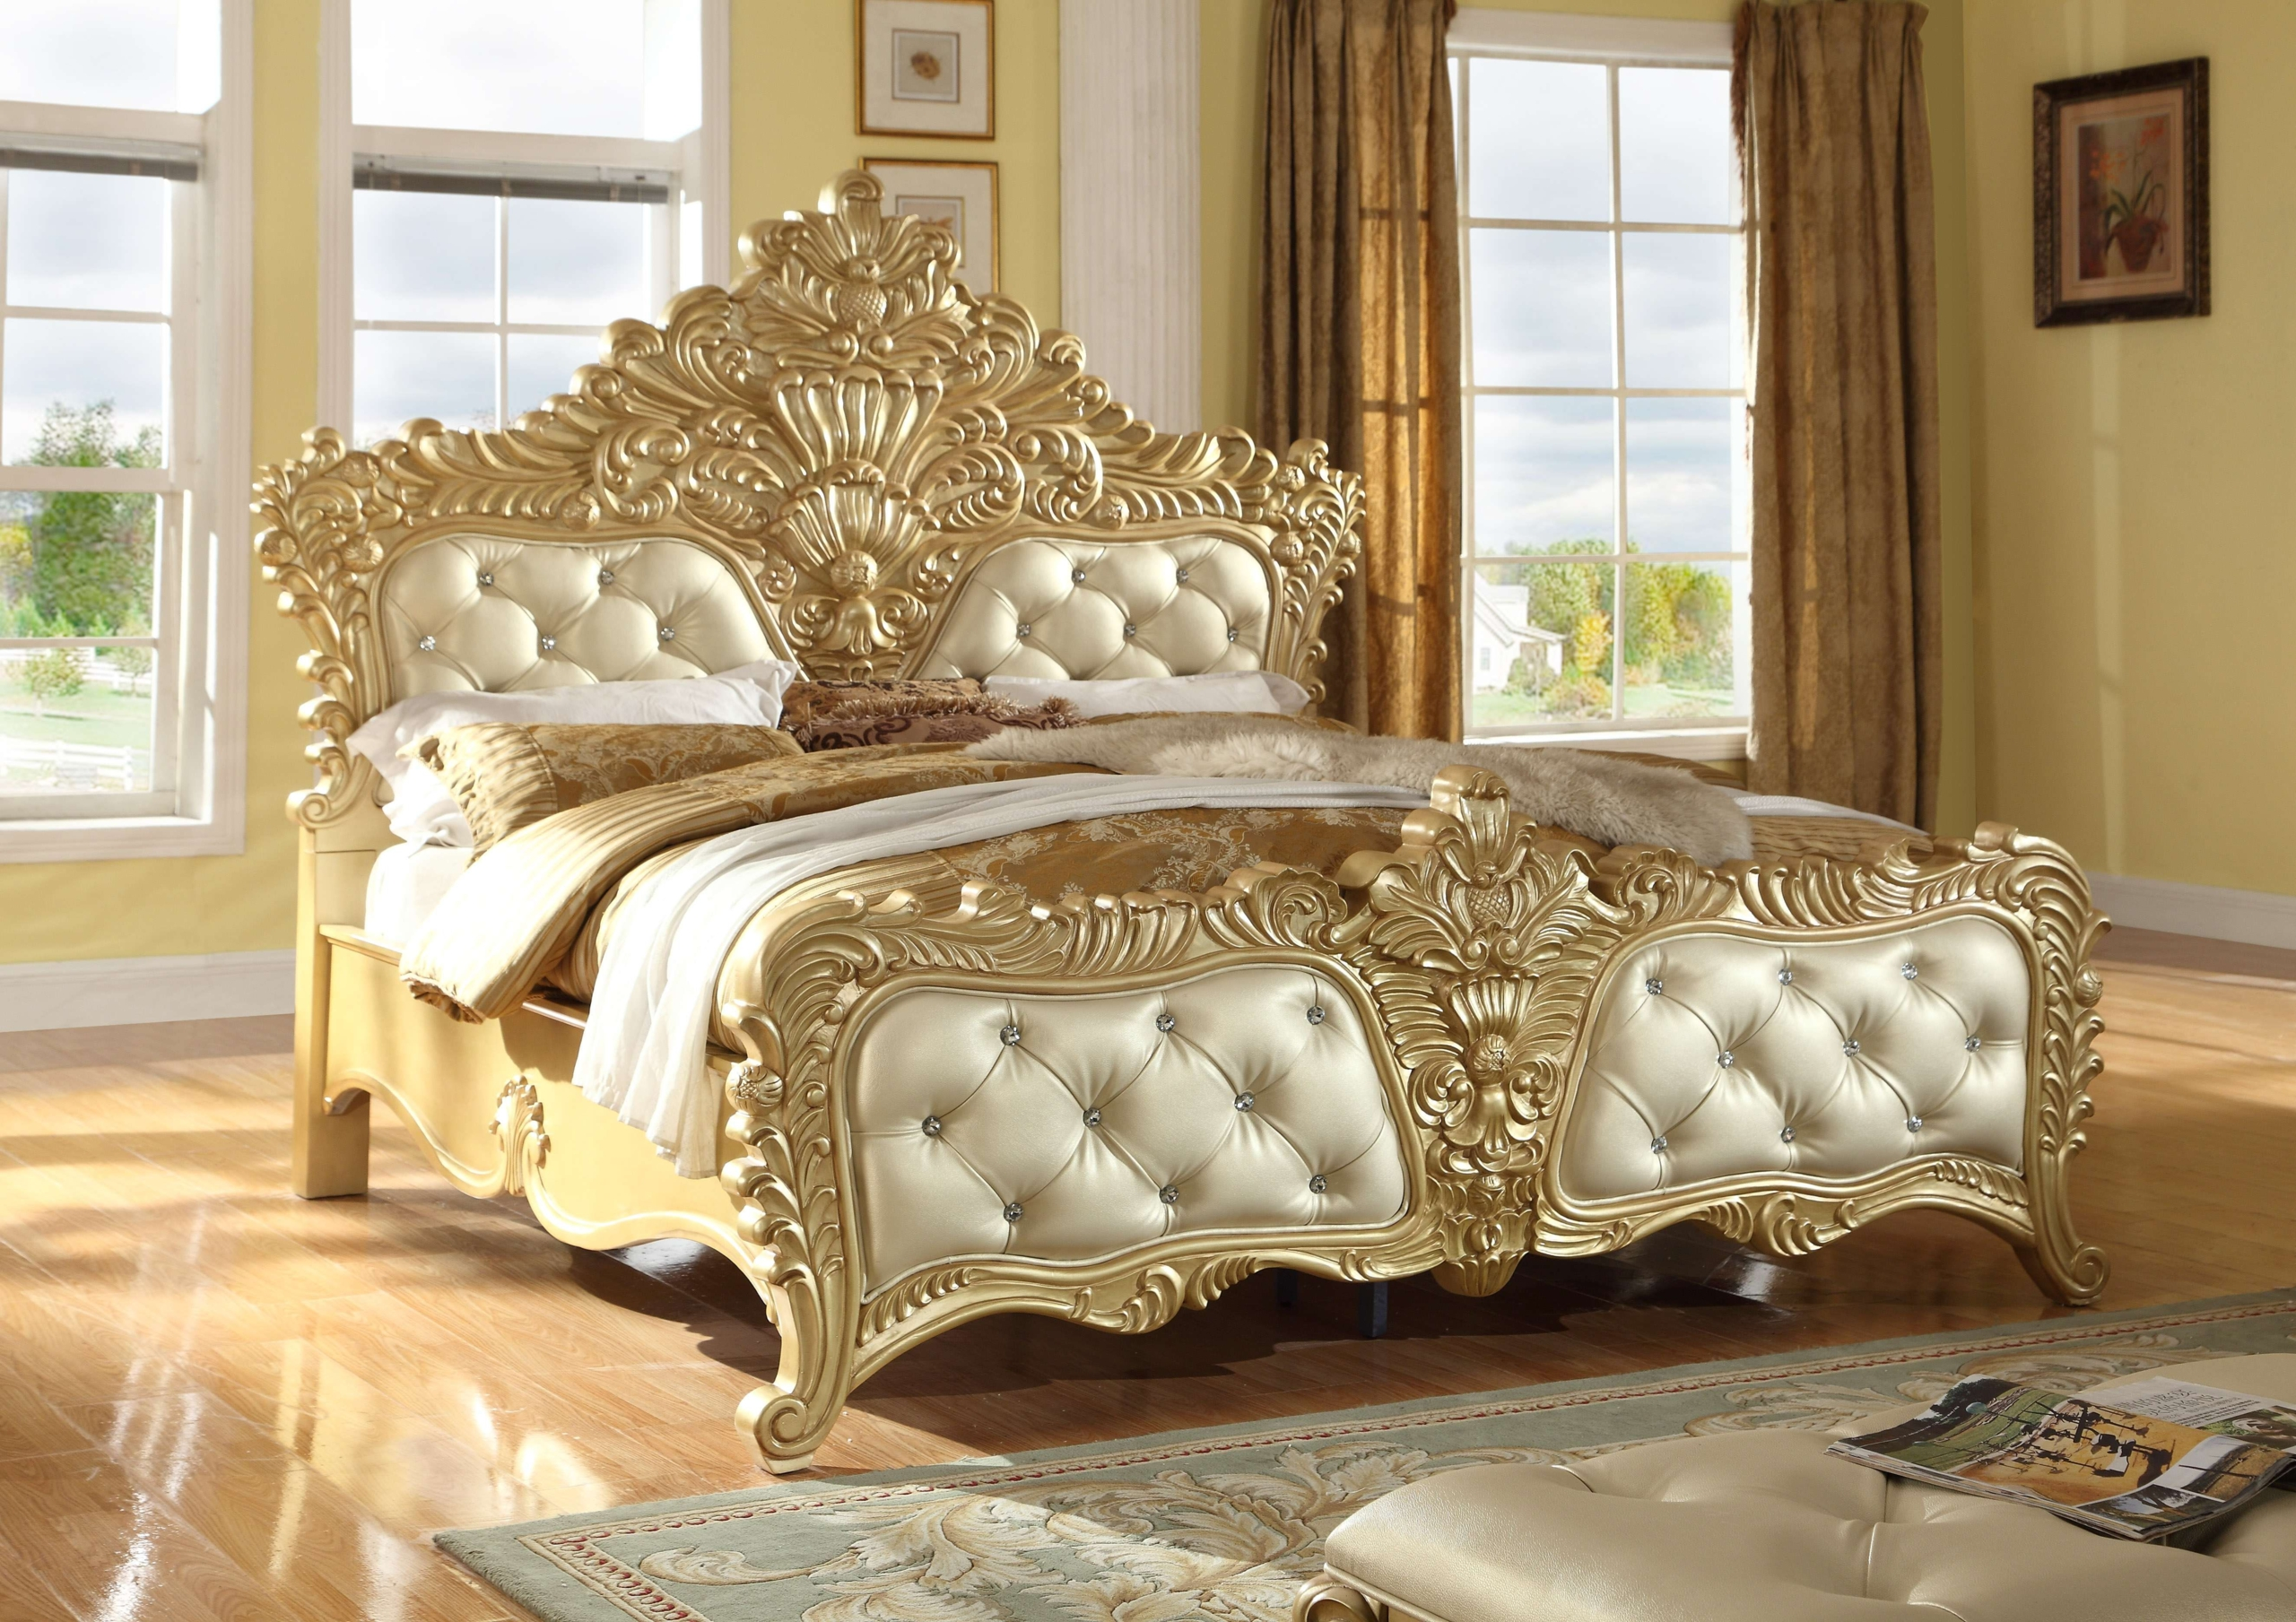 Gold Bed Frame You Ll Love In 2021 Visualhunt